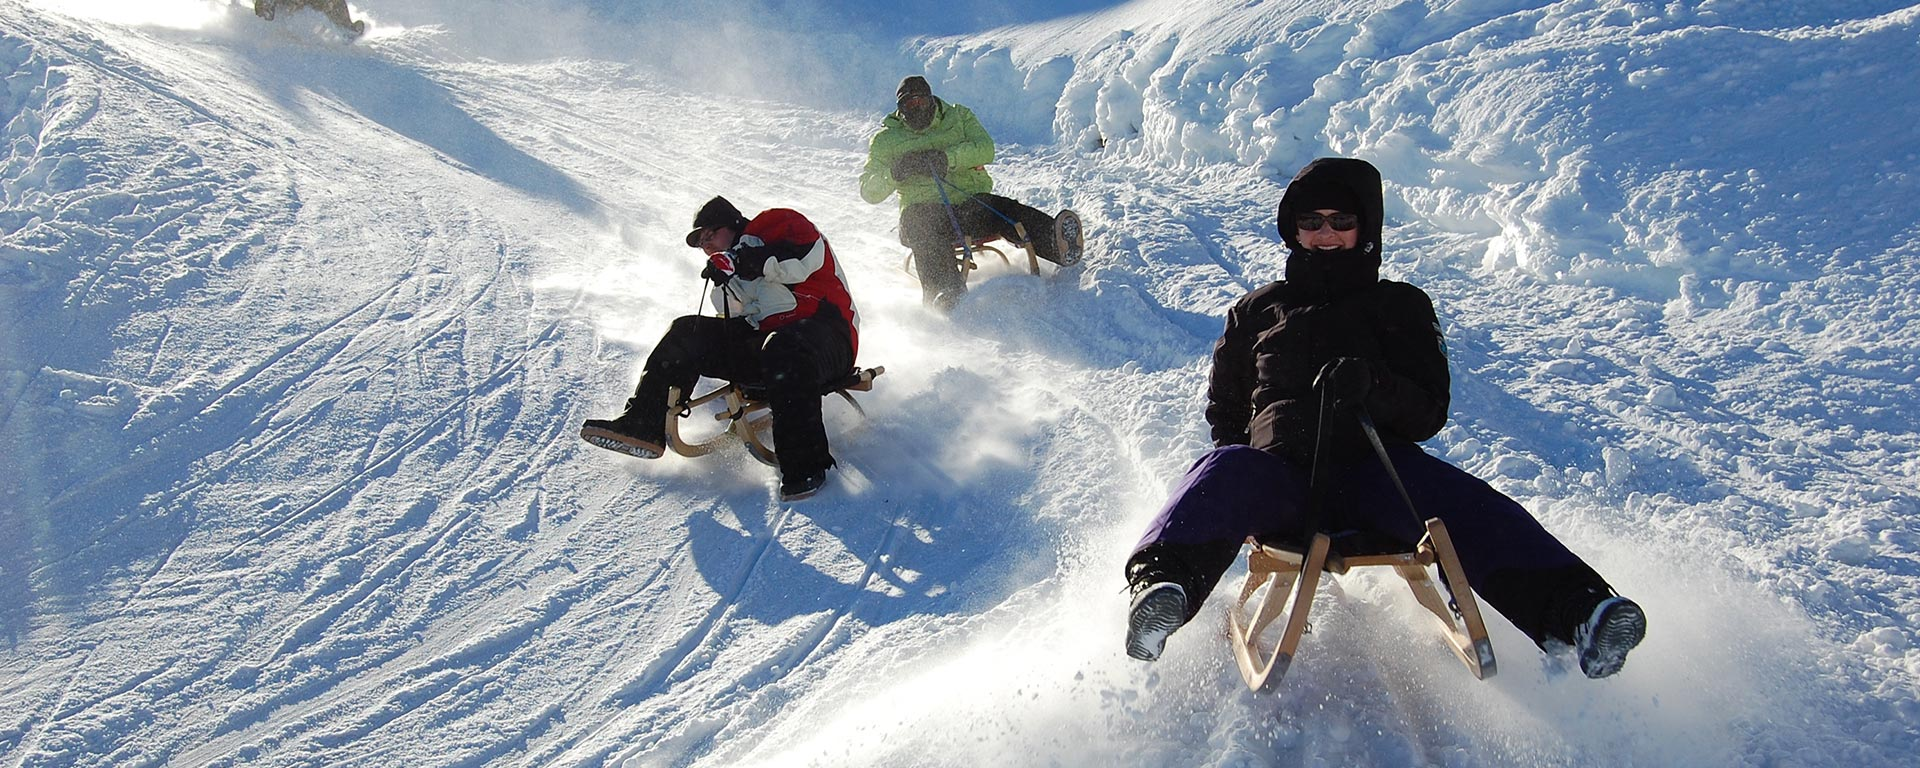 a family is having fun on their sleds on a slope in South Tyrol